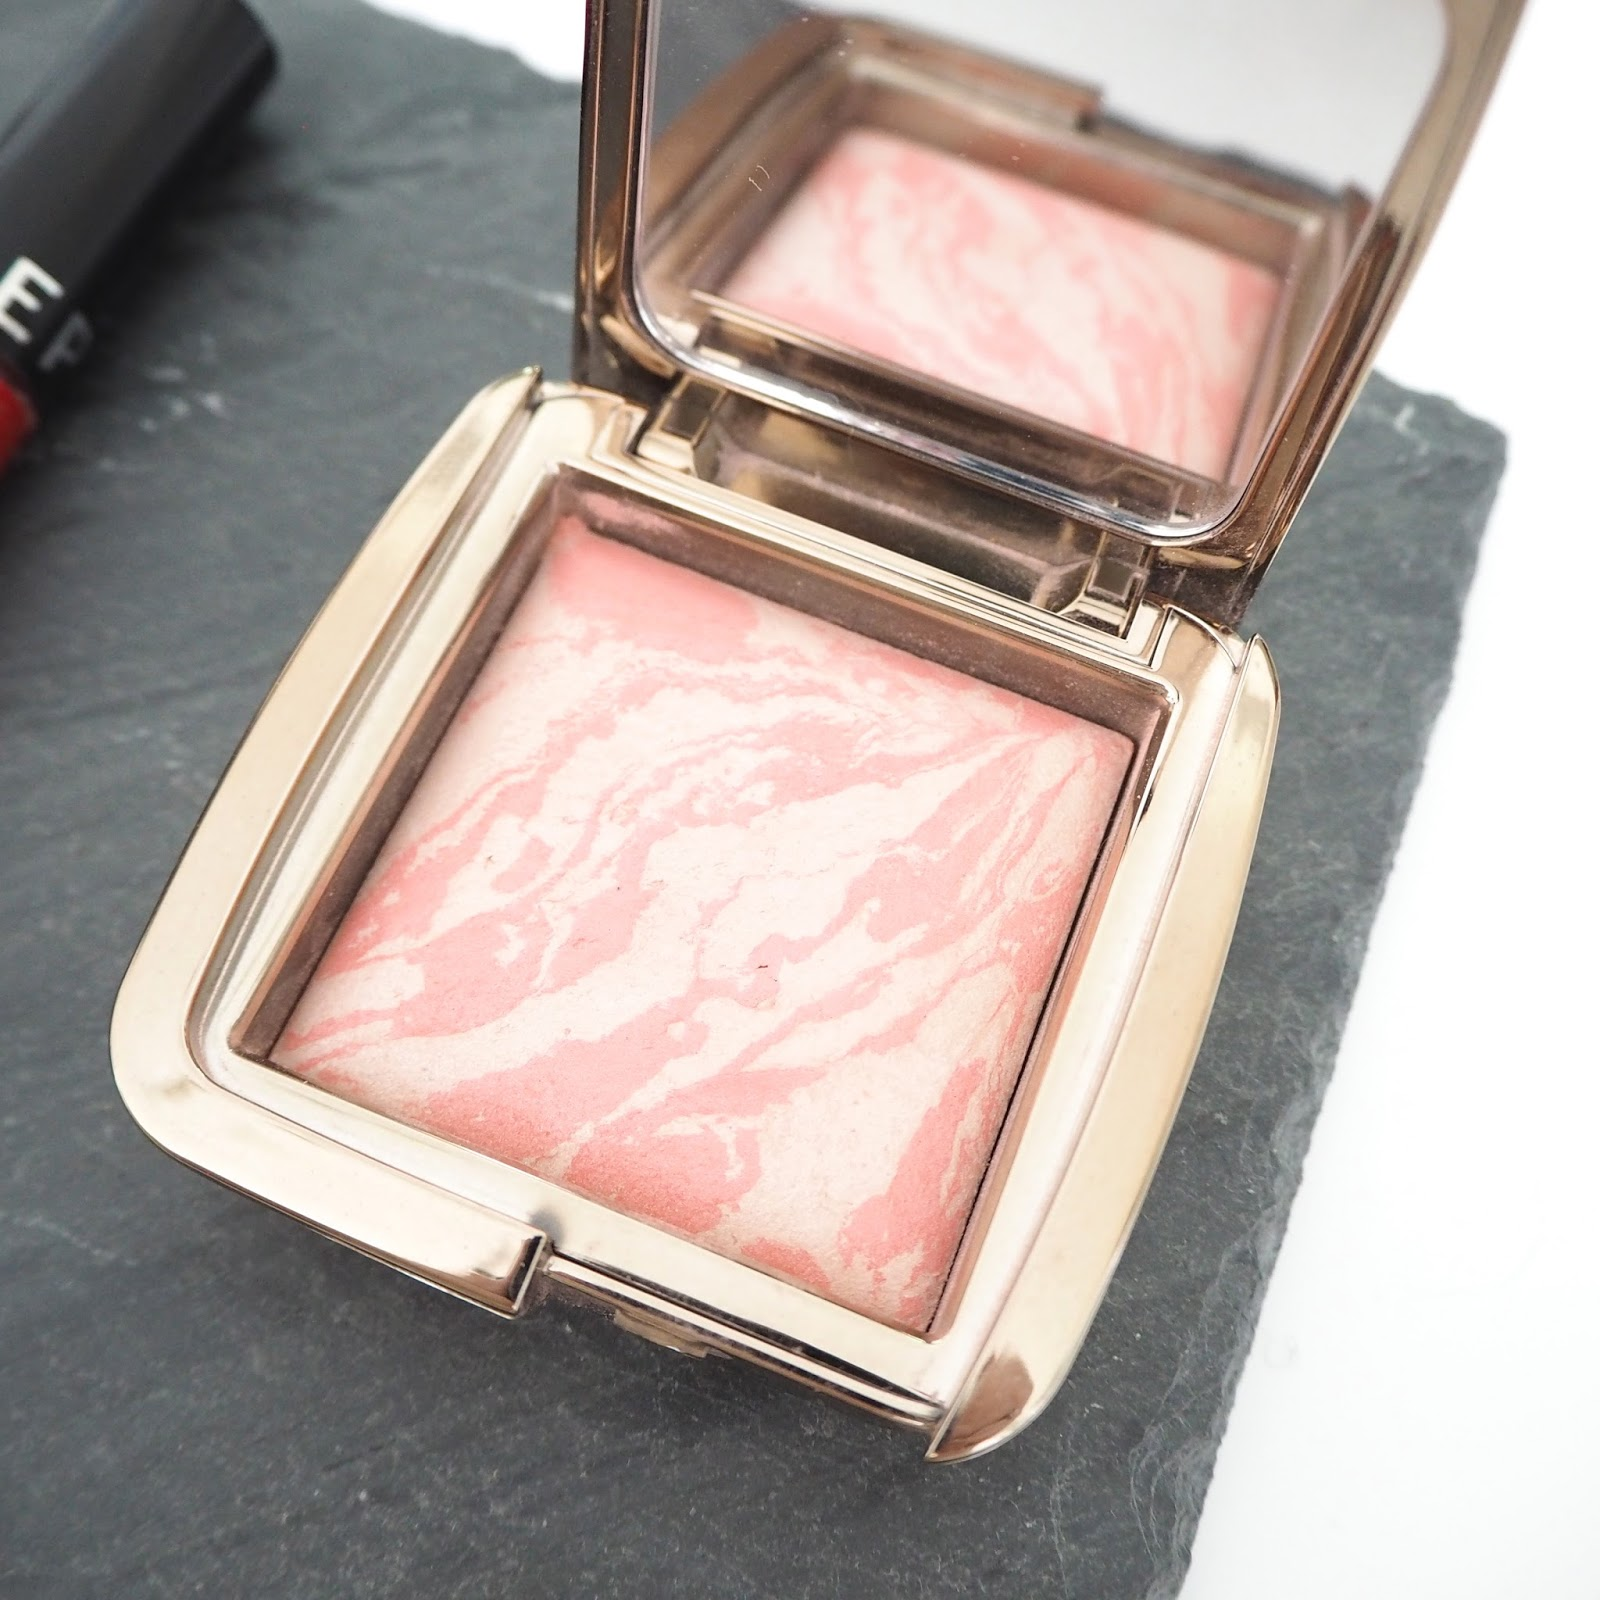 Hourglass Ambient Lighting Blush in Incandescent Electra